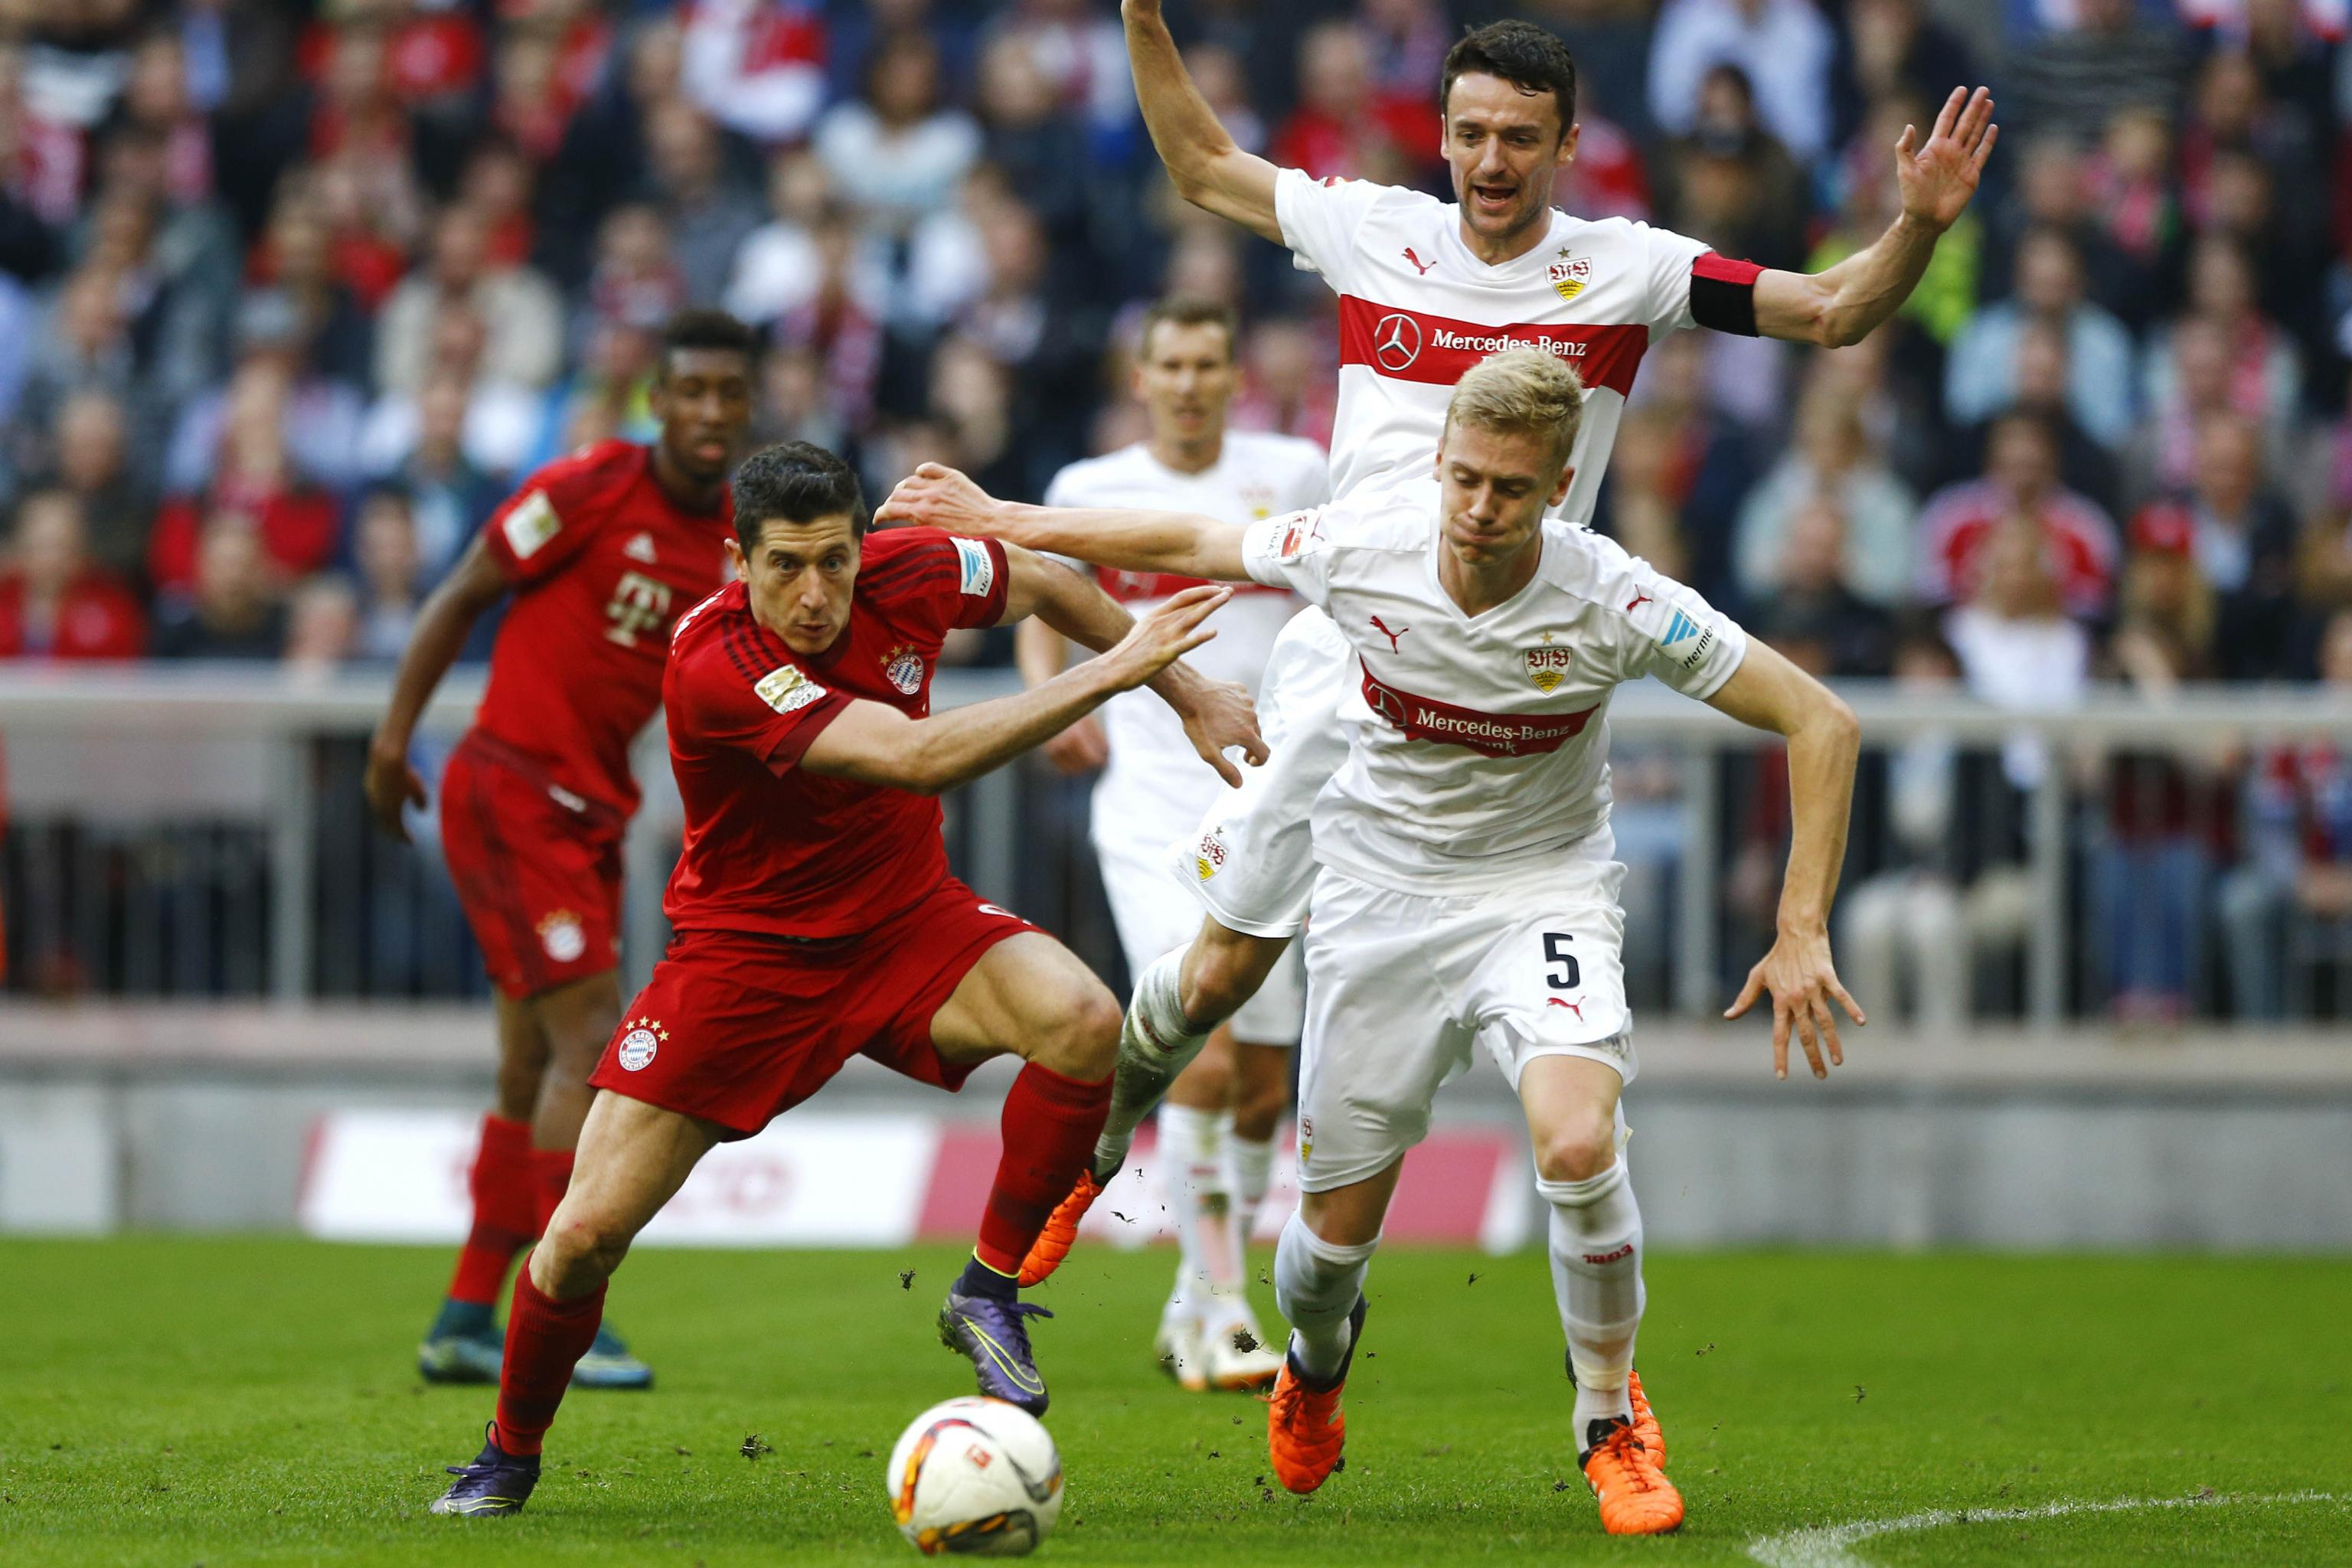 Vfb Stuttgart Vs Bayern Munich Team News Preview Live Stream Tv Info Bleacher Report Latest News Videos And Highlights